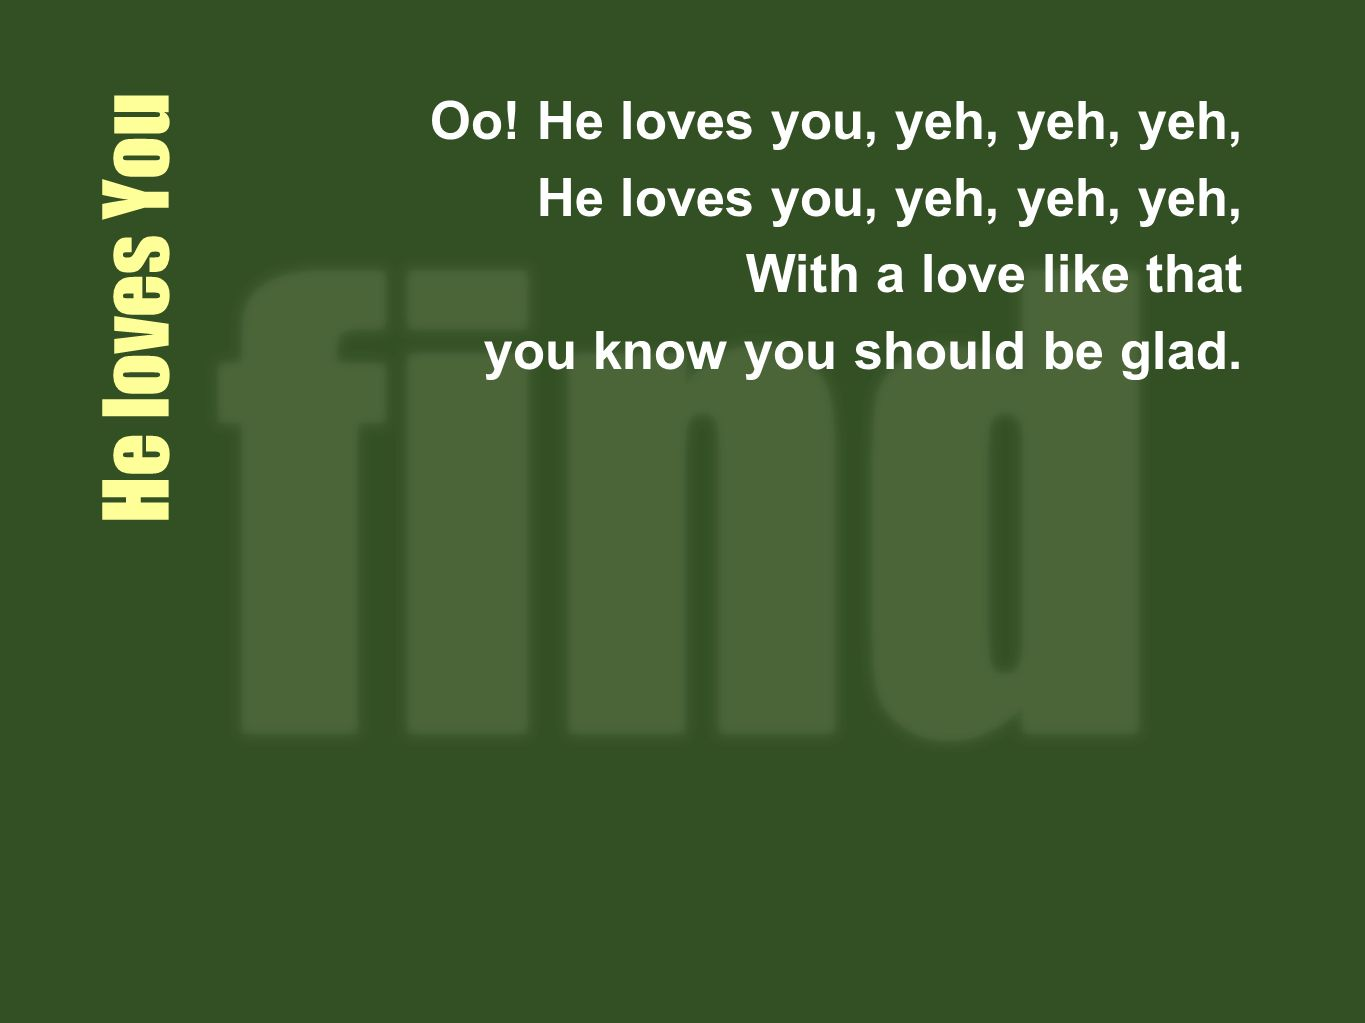 He loves You Oo.